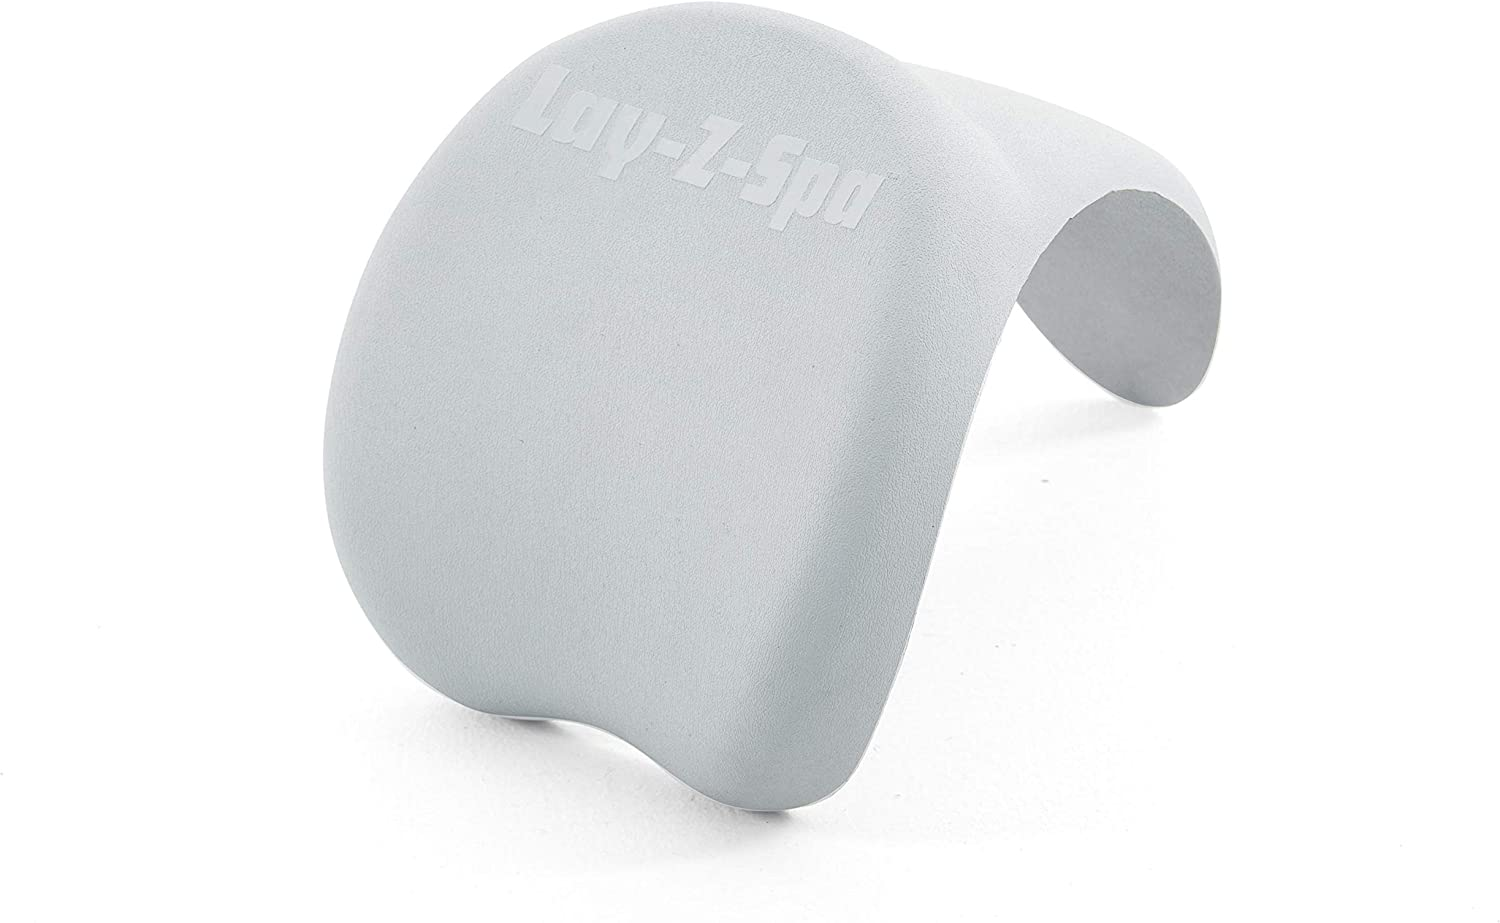 White Lay-Z-Spa 58317-17 Pillow Set Hot Tub Head Rest Set of 2